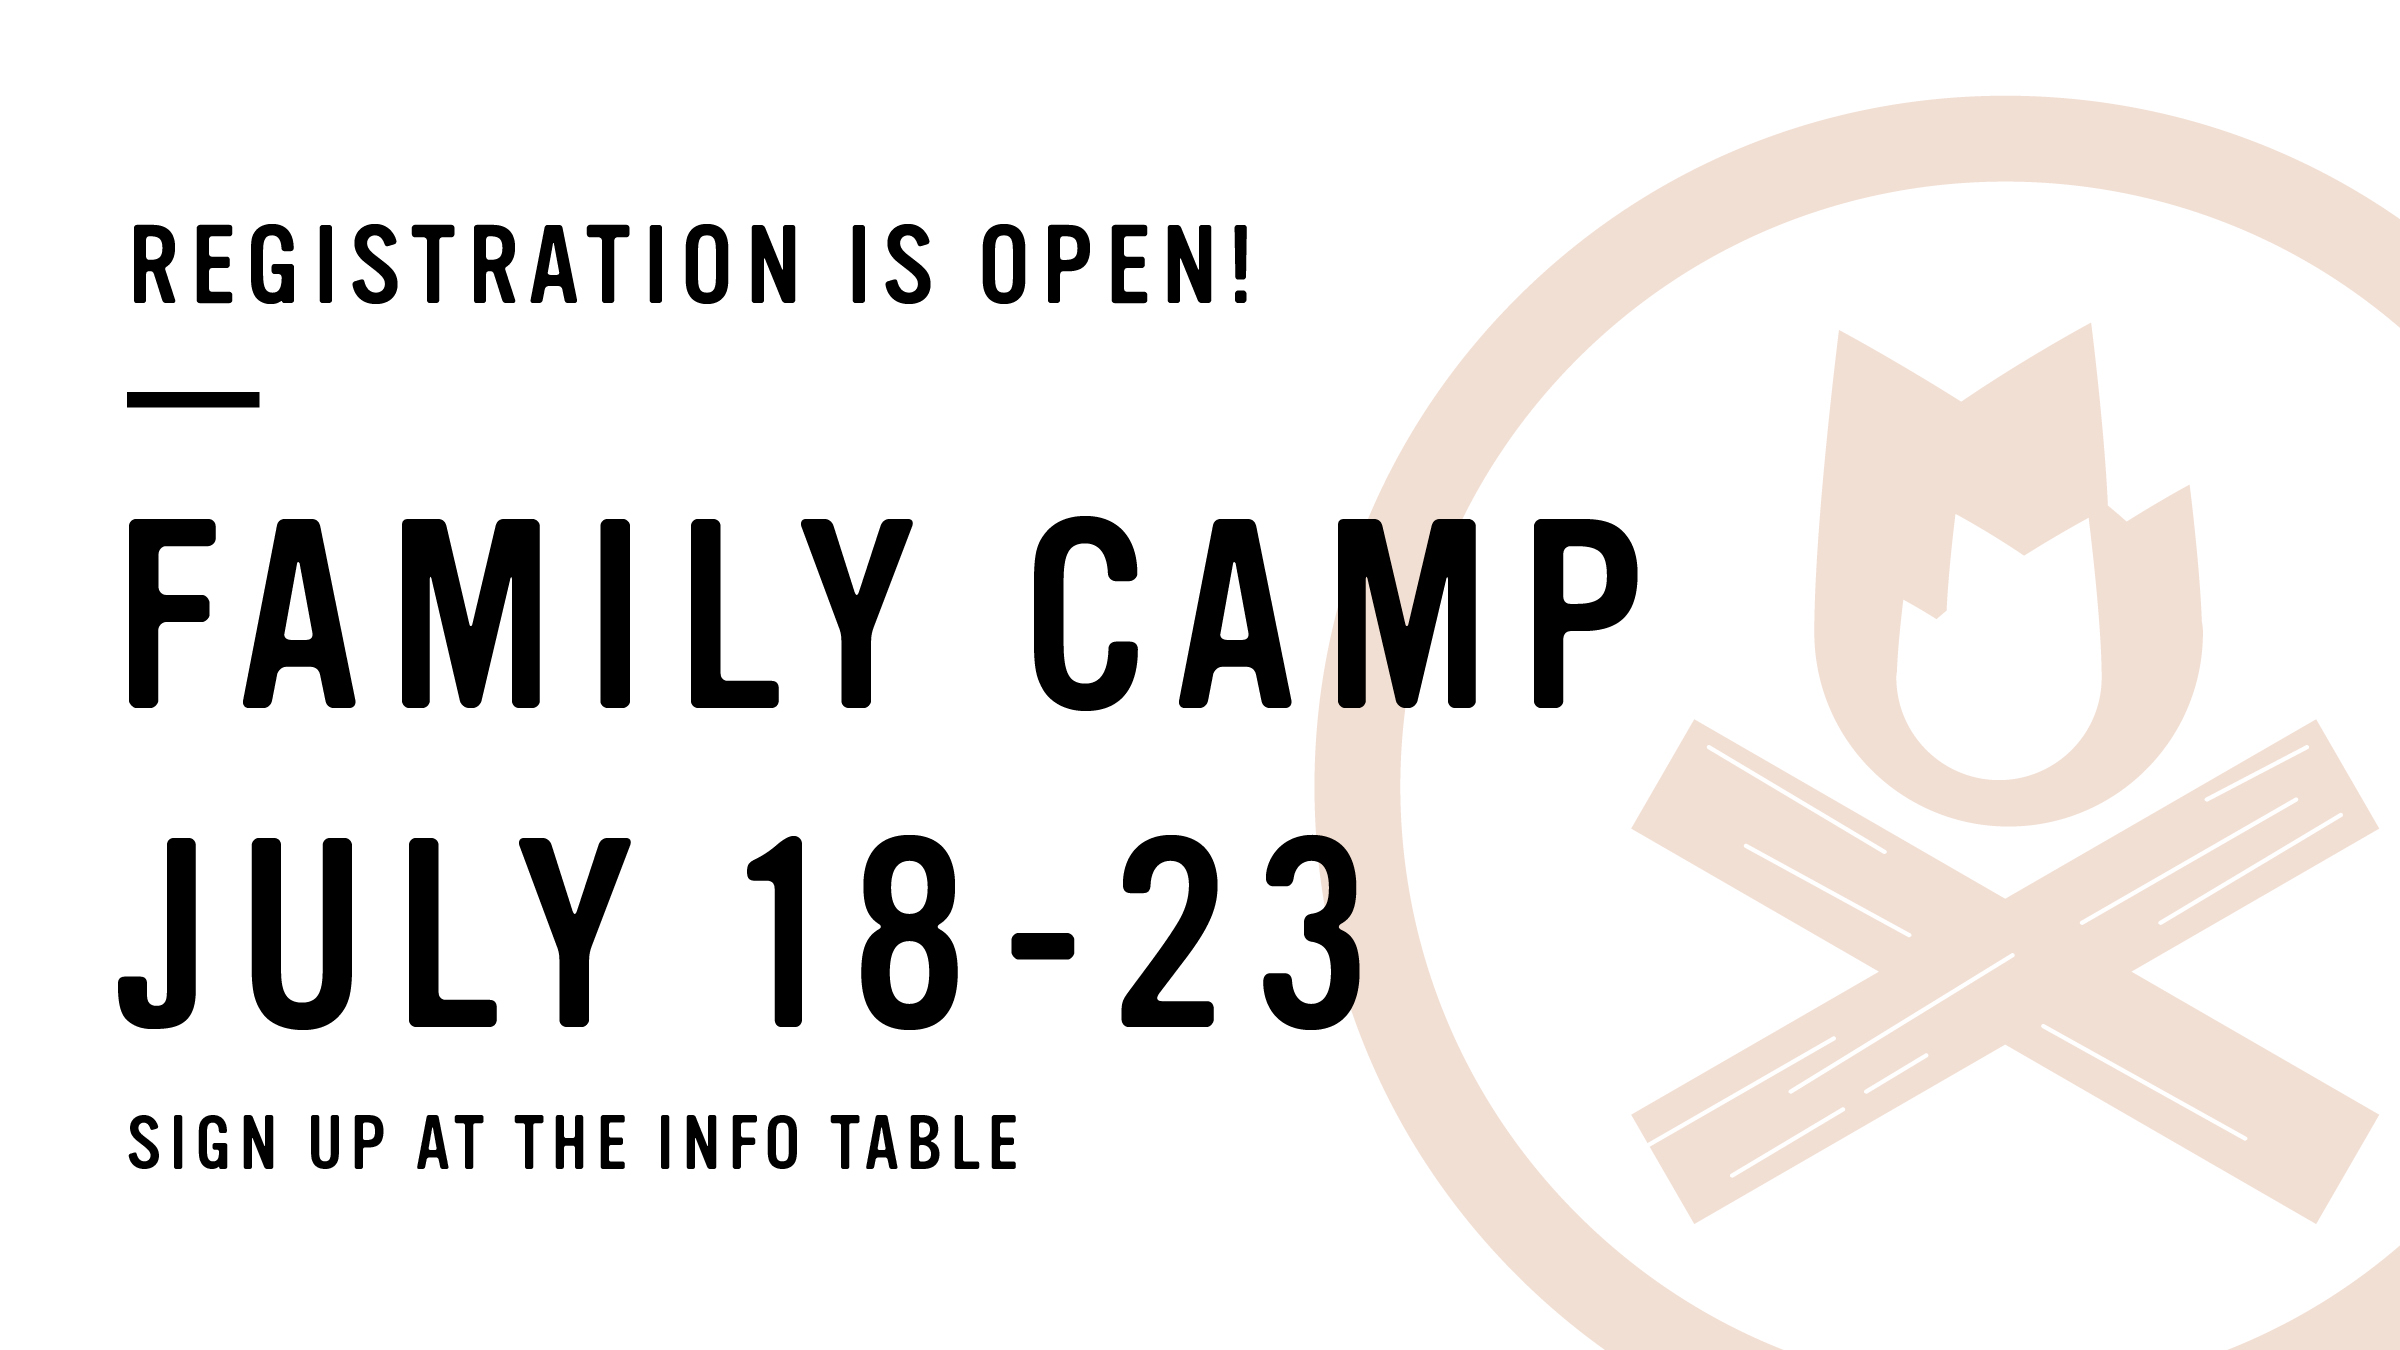 Family camp open